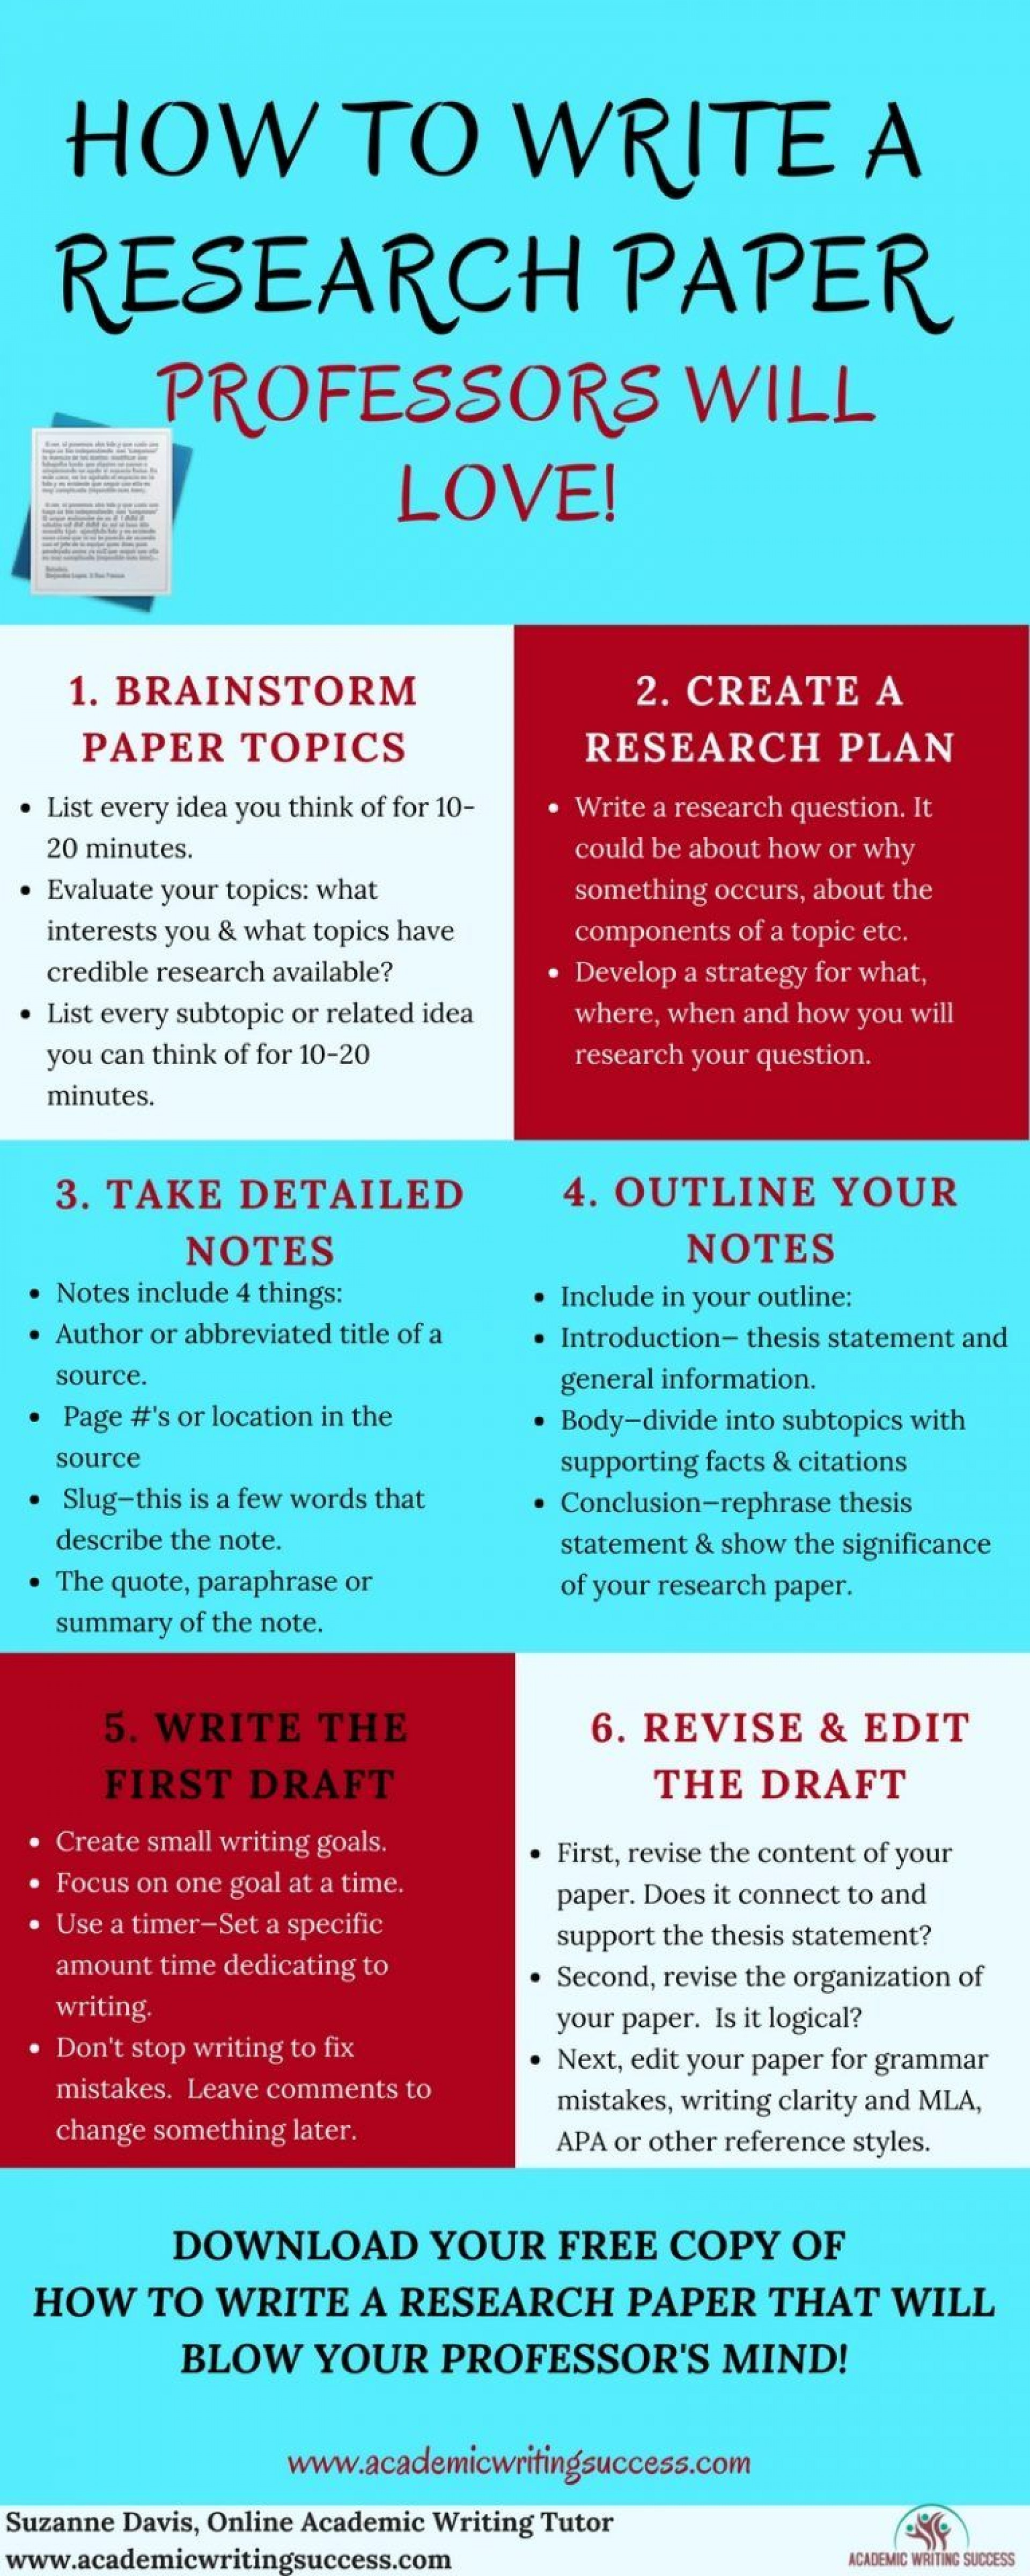 002 Steps To Write Basic Research Unbelievable 10 A Paper Writing Ppt How Pdf 1920